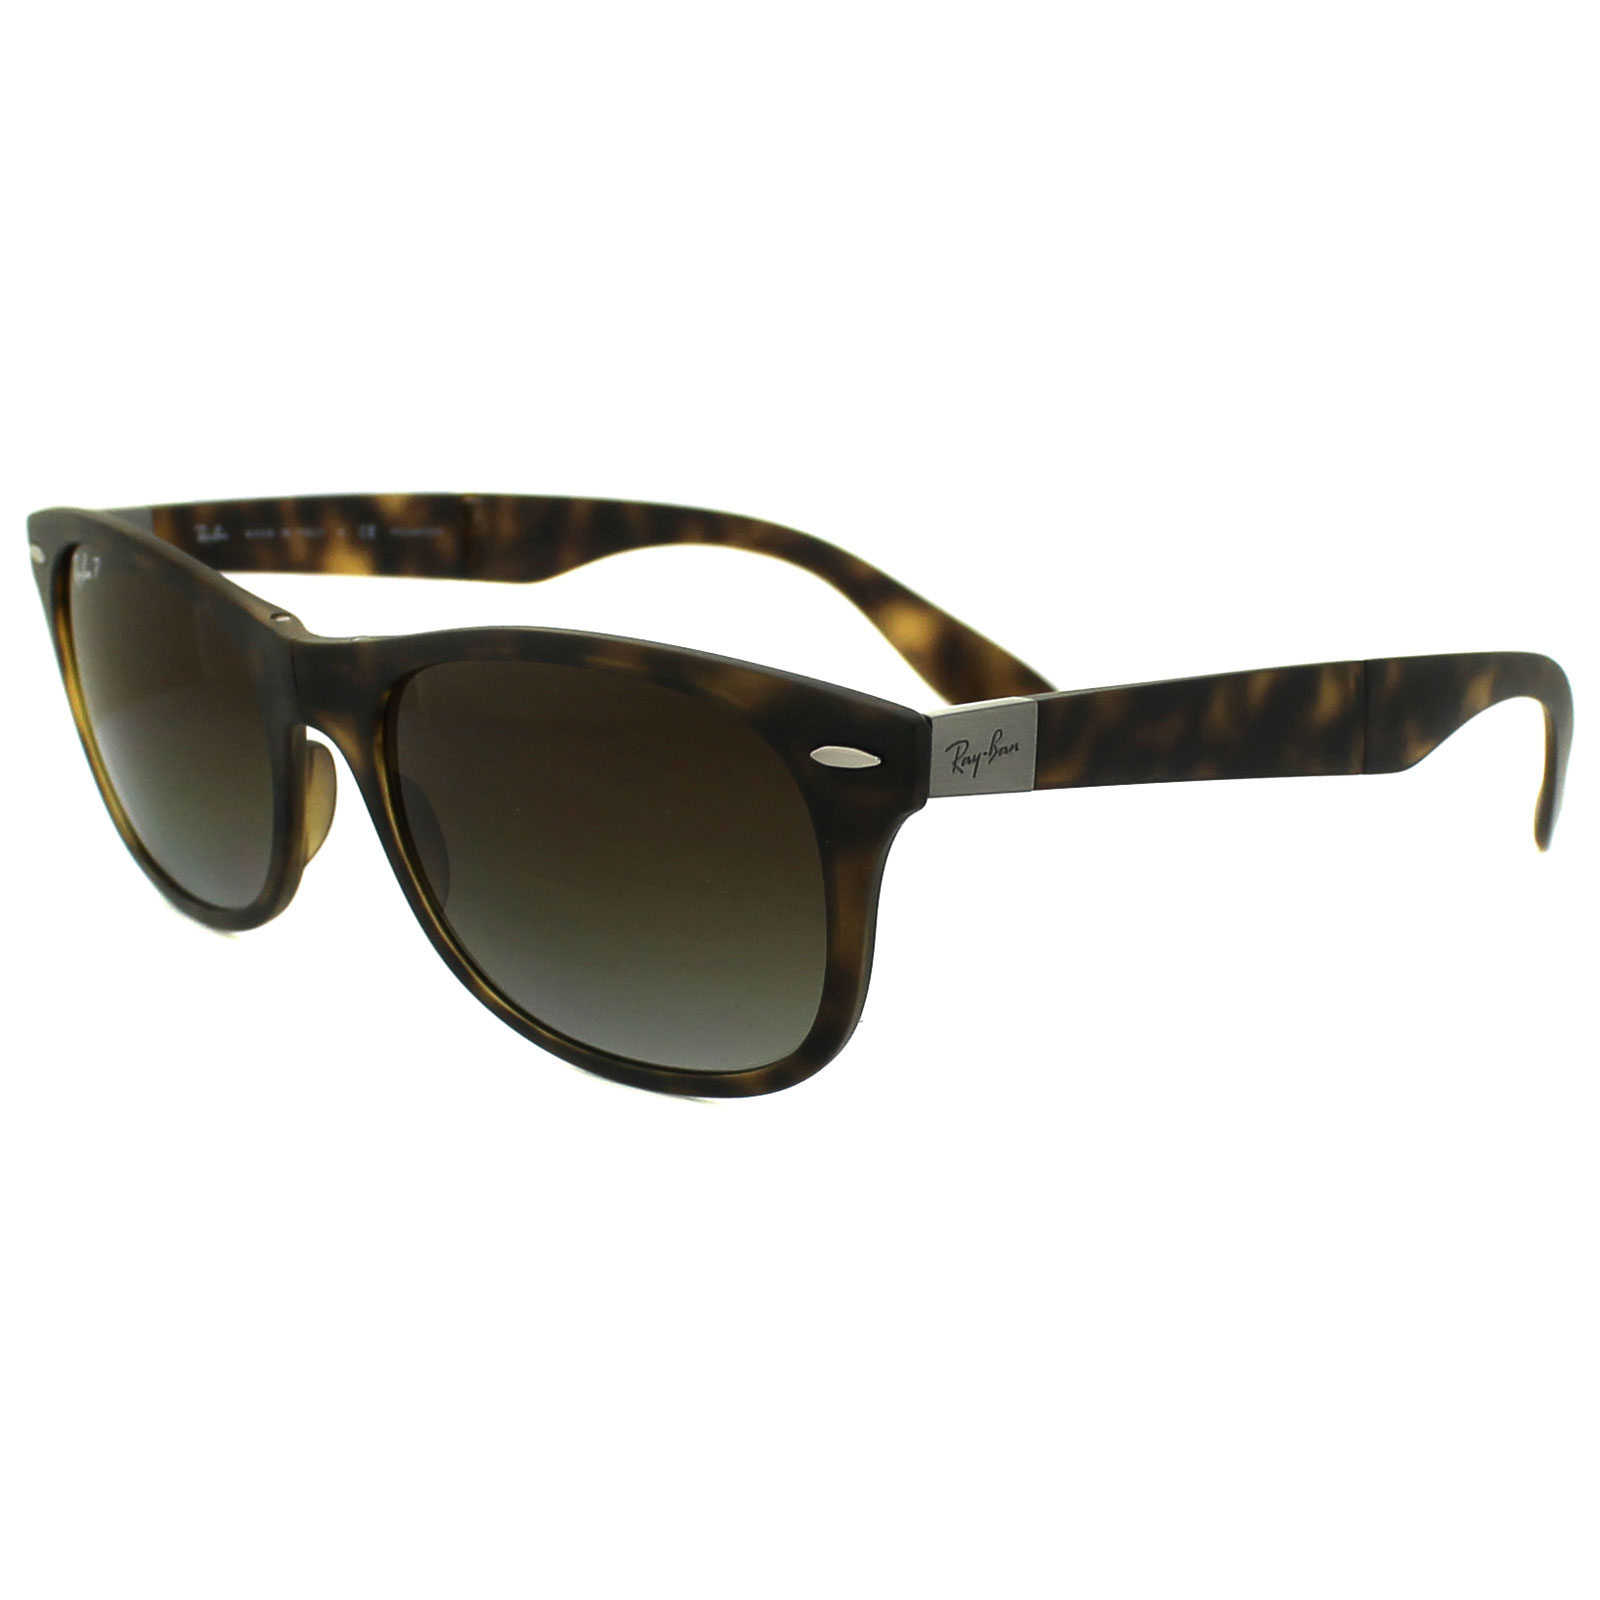 8d8283f2b9 Cheap Ray-Ban 4223 Sunglasses - Discounted Sunglasses